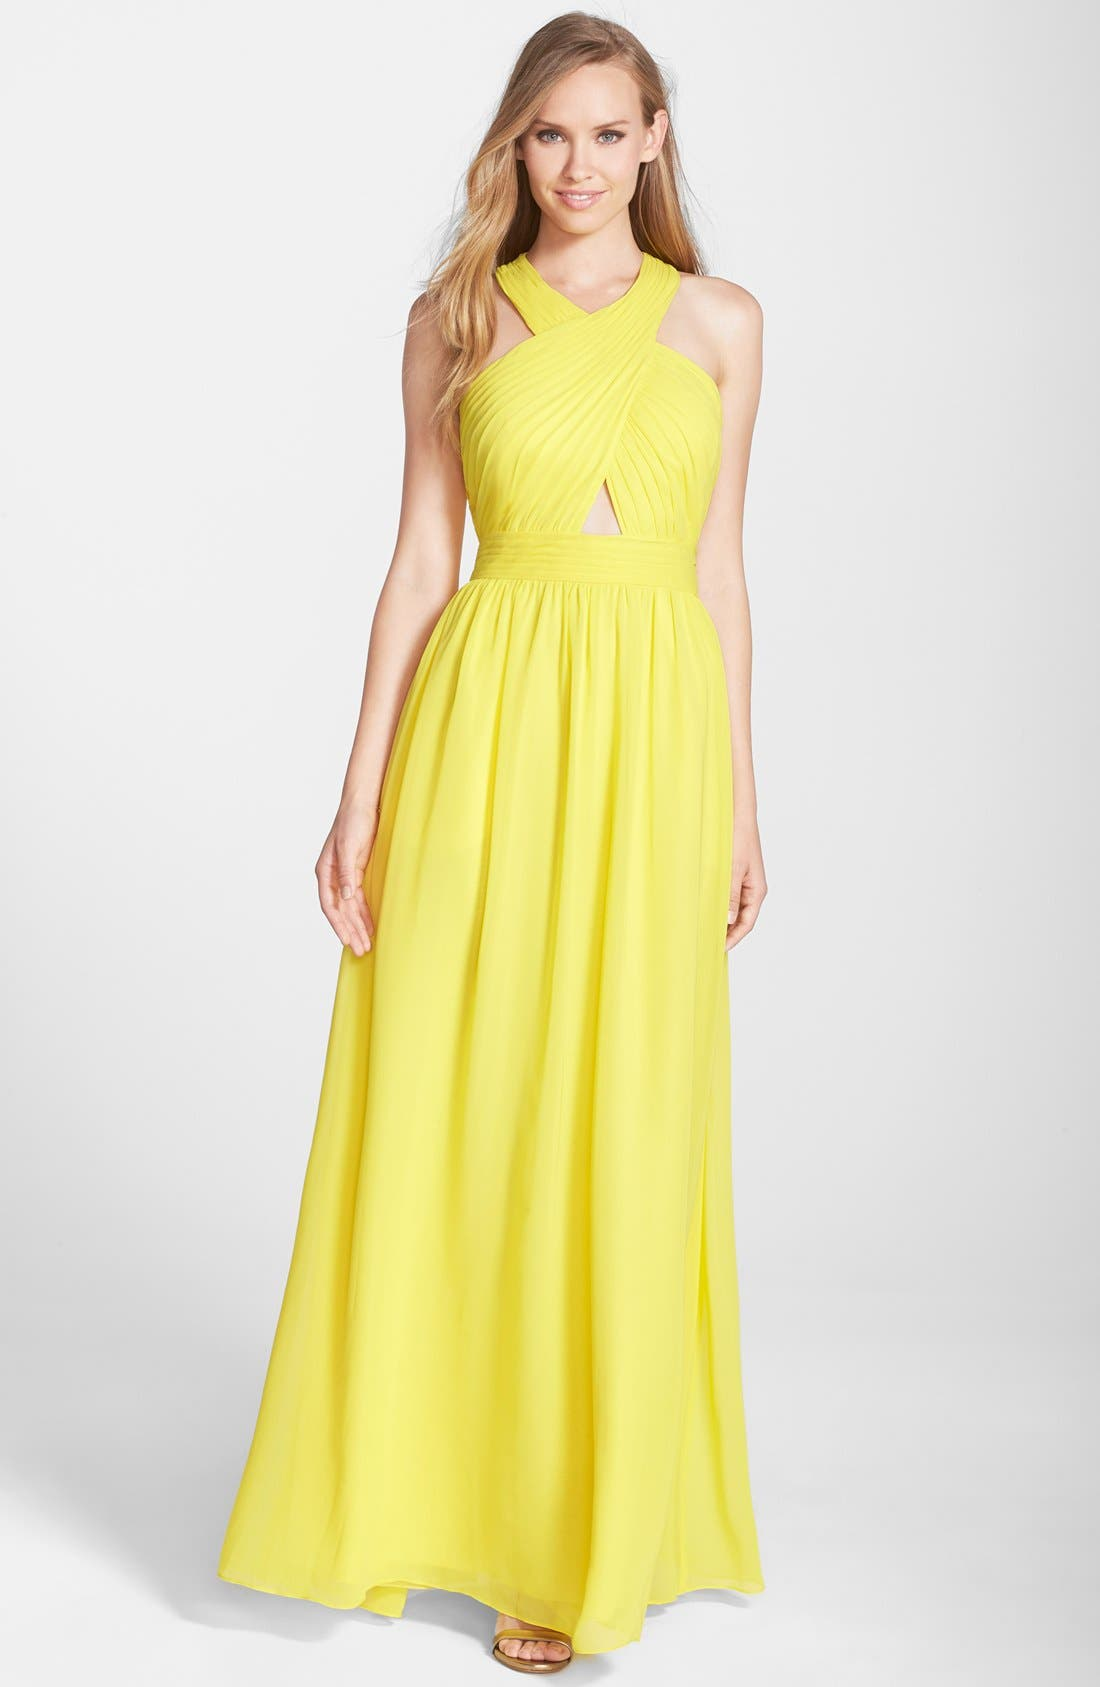 Alternate Image 1 Selected - Hailey by Adrianna Papell Ruched Cutout Chiffon Gown